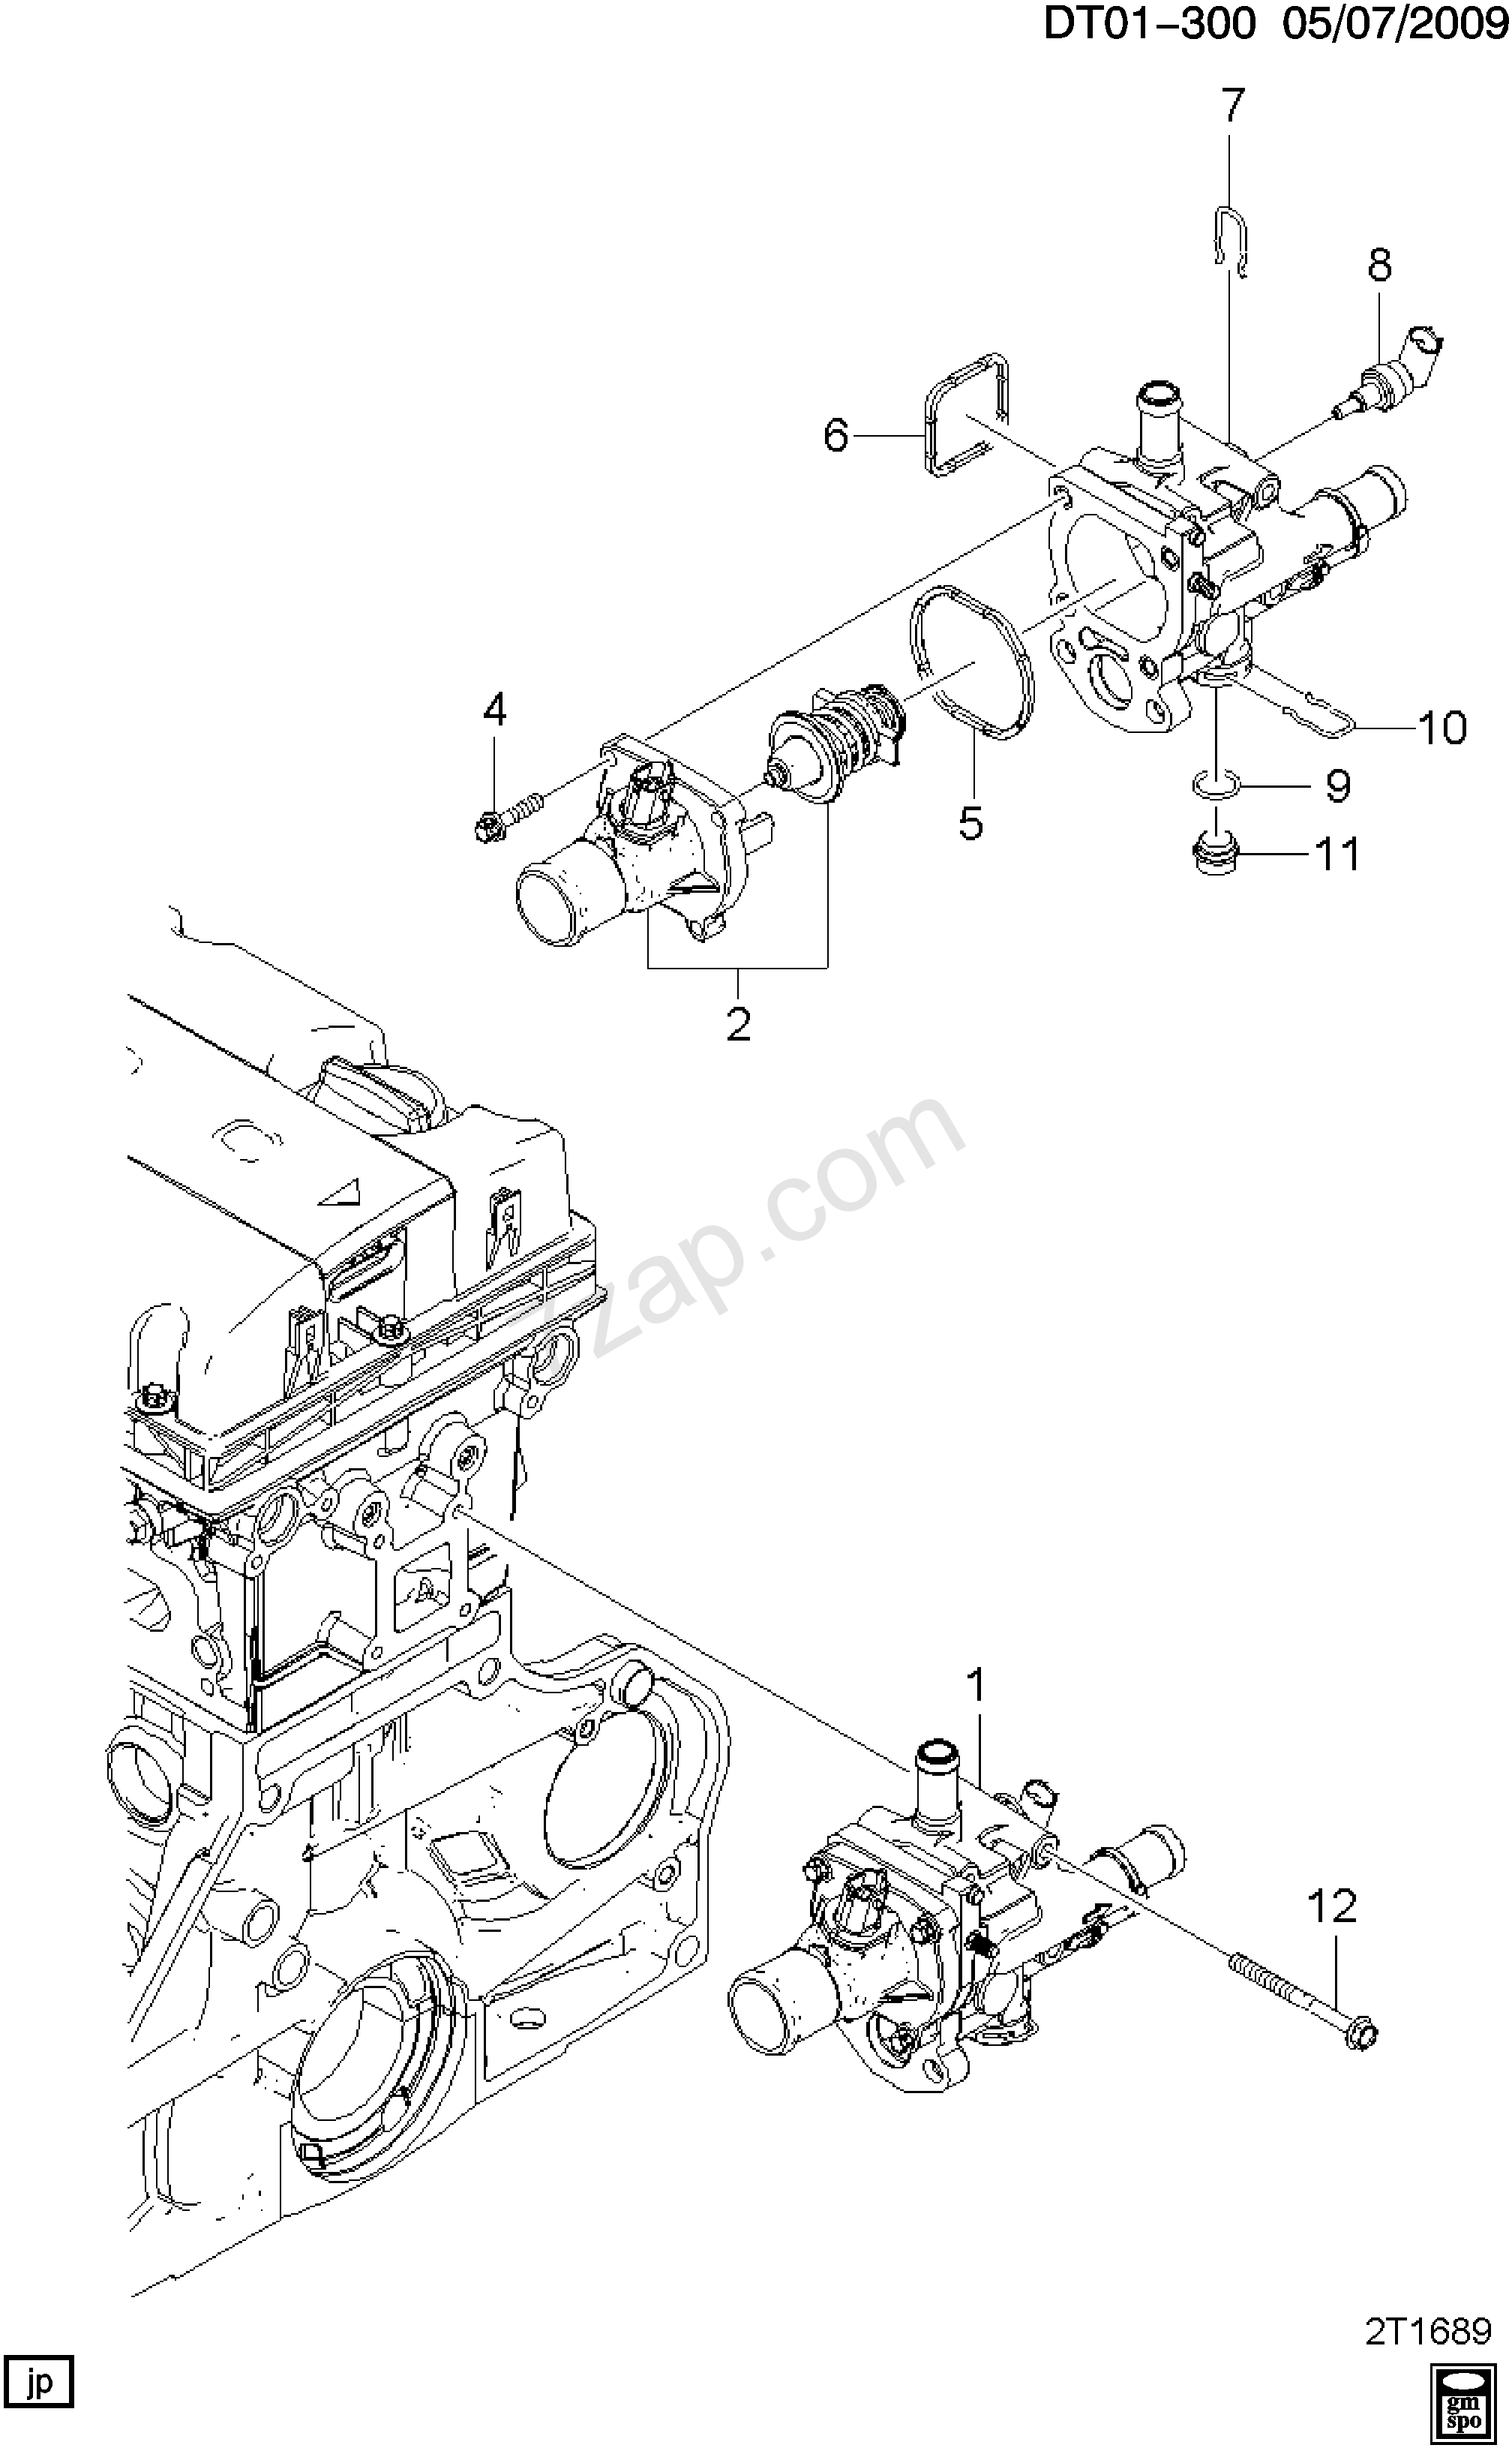 wiring diagram for 09 chevy aveo nw 9936  2006 chevy aveo engine diagram car pictures schematic wiring  nw 9936  2006 chevy aveo engine diagram